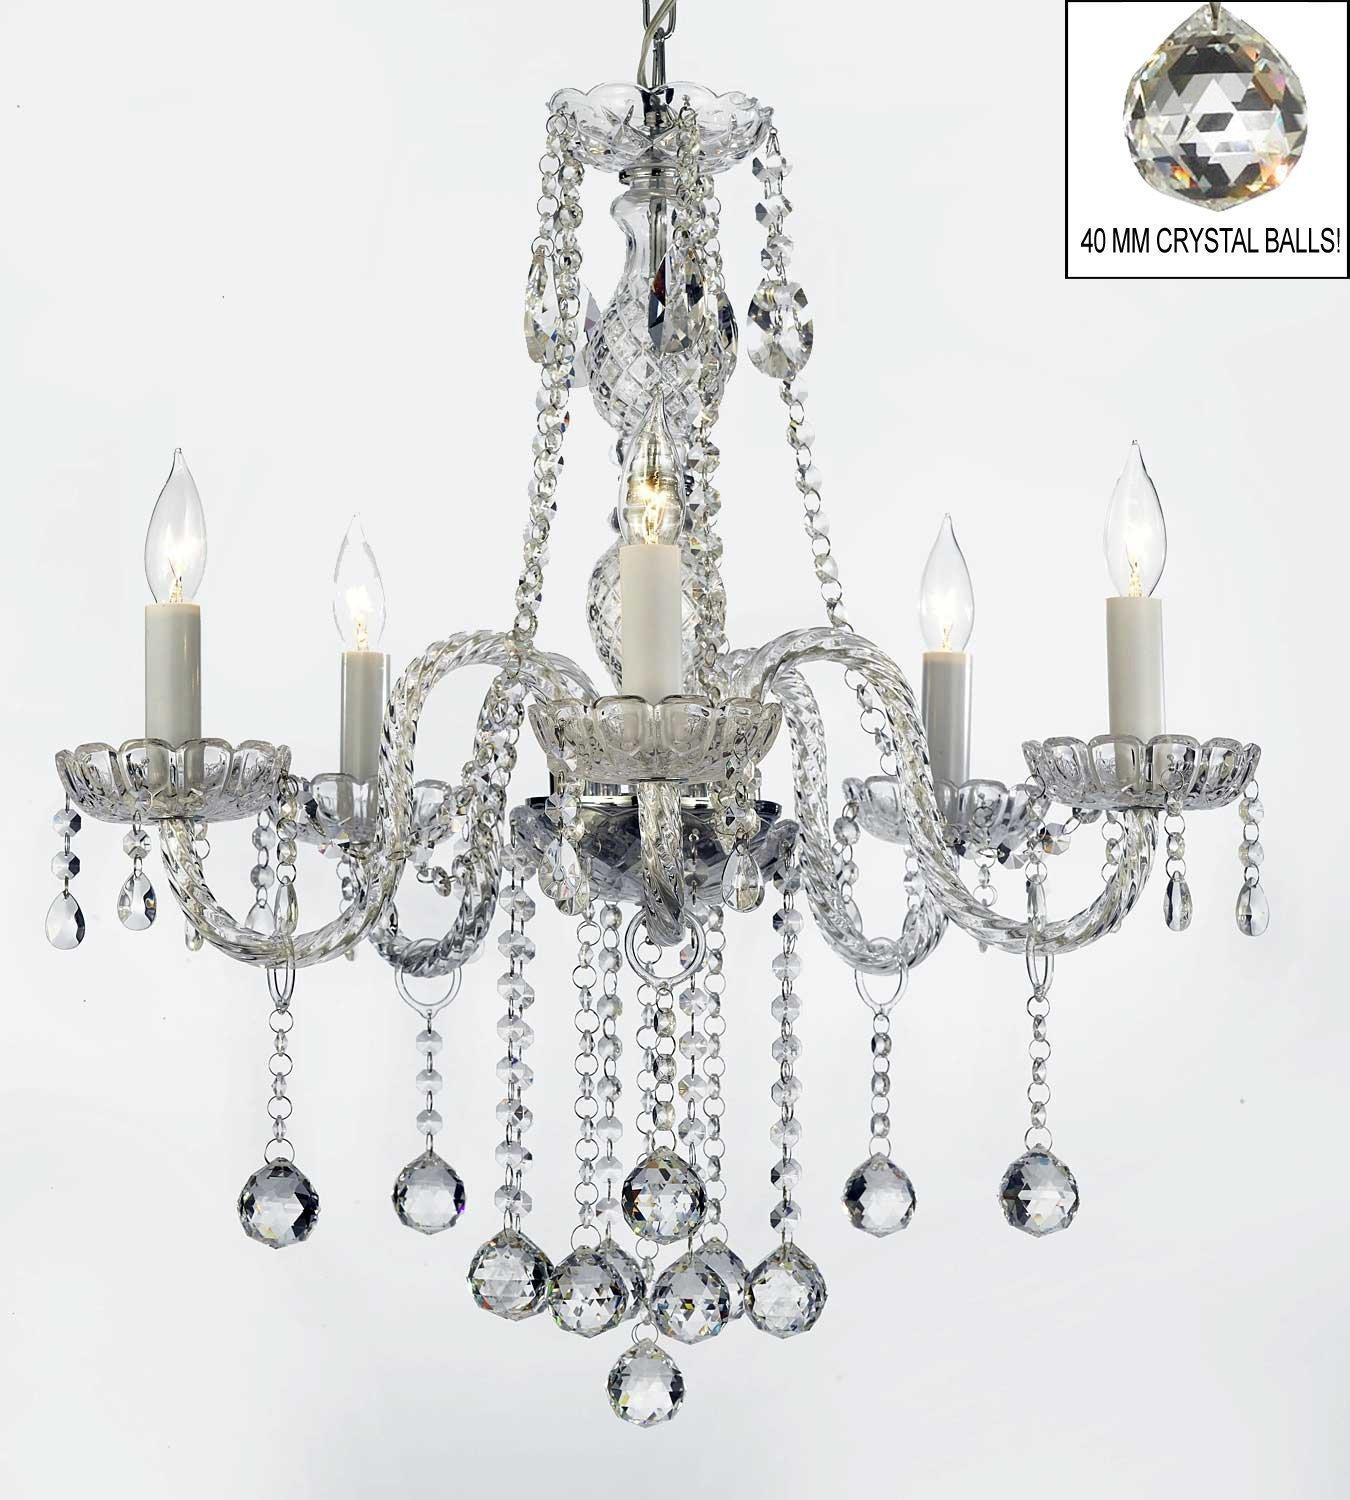 Authentic All Crystal Chandelier Lighting With Crystal Balls